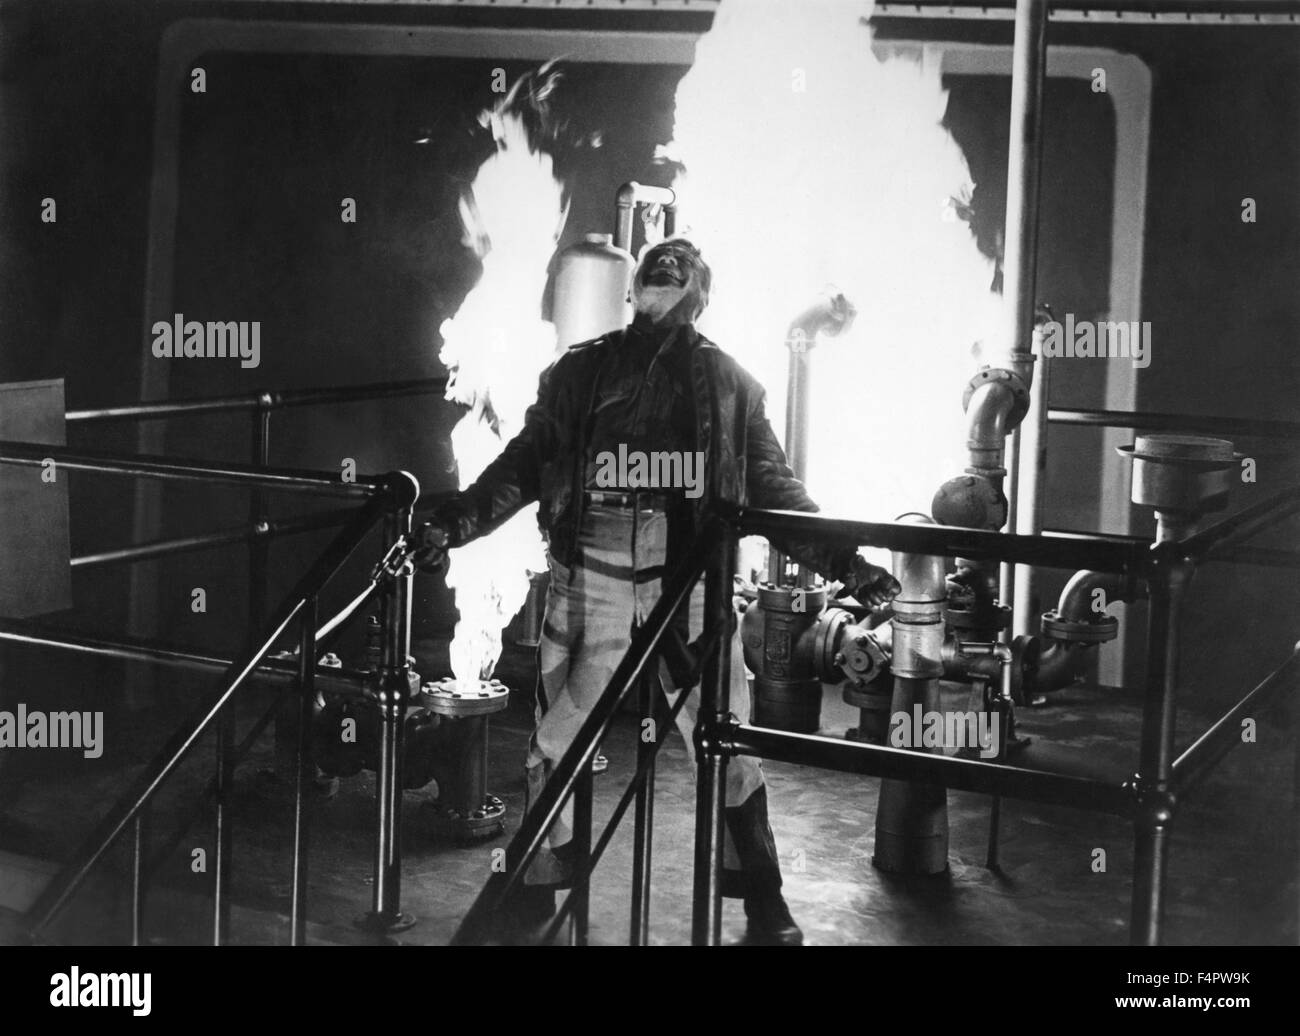 James Cagney / White Heat / 1949 directed by Raoul Walsh [Warner Bros. Pictures] - Stock Image